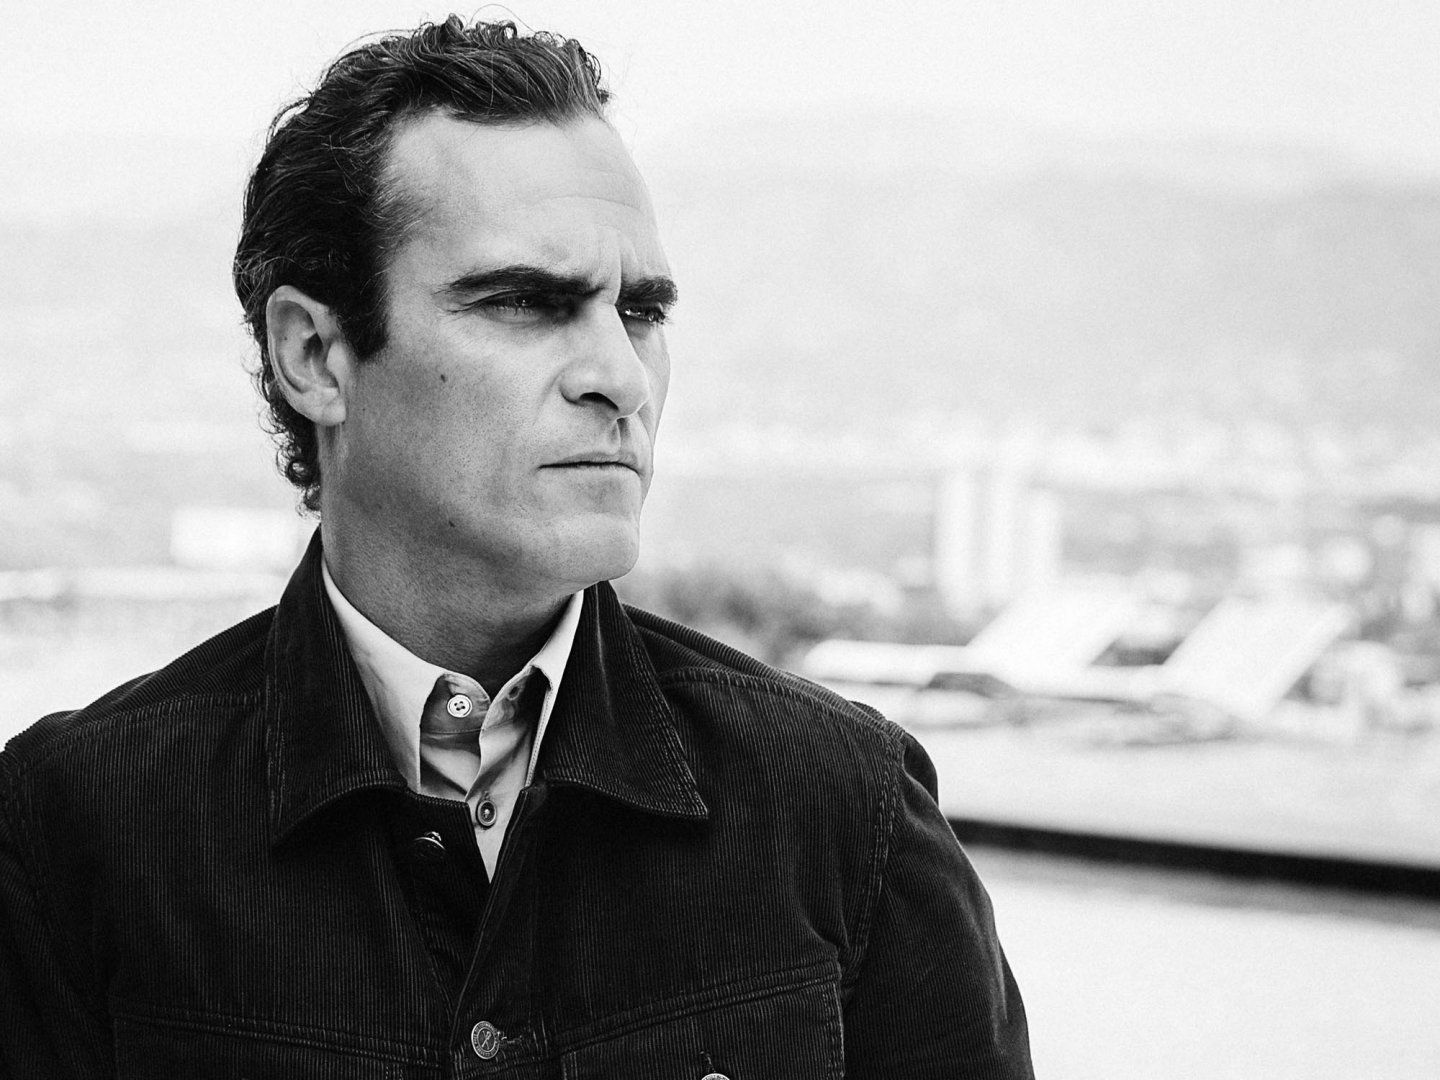 http://www.esquire.co.uk/style/esquire-men/5187/joaquin-phoenix-esquire-interview-pictures/1/